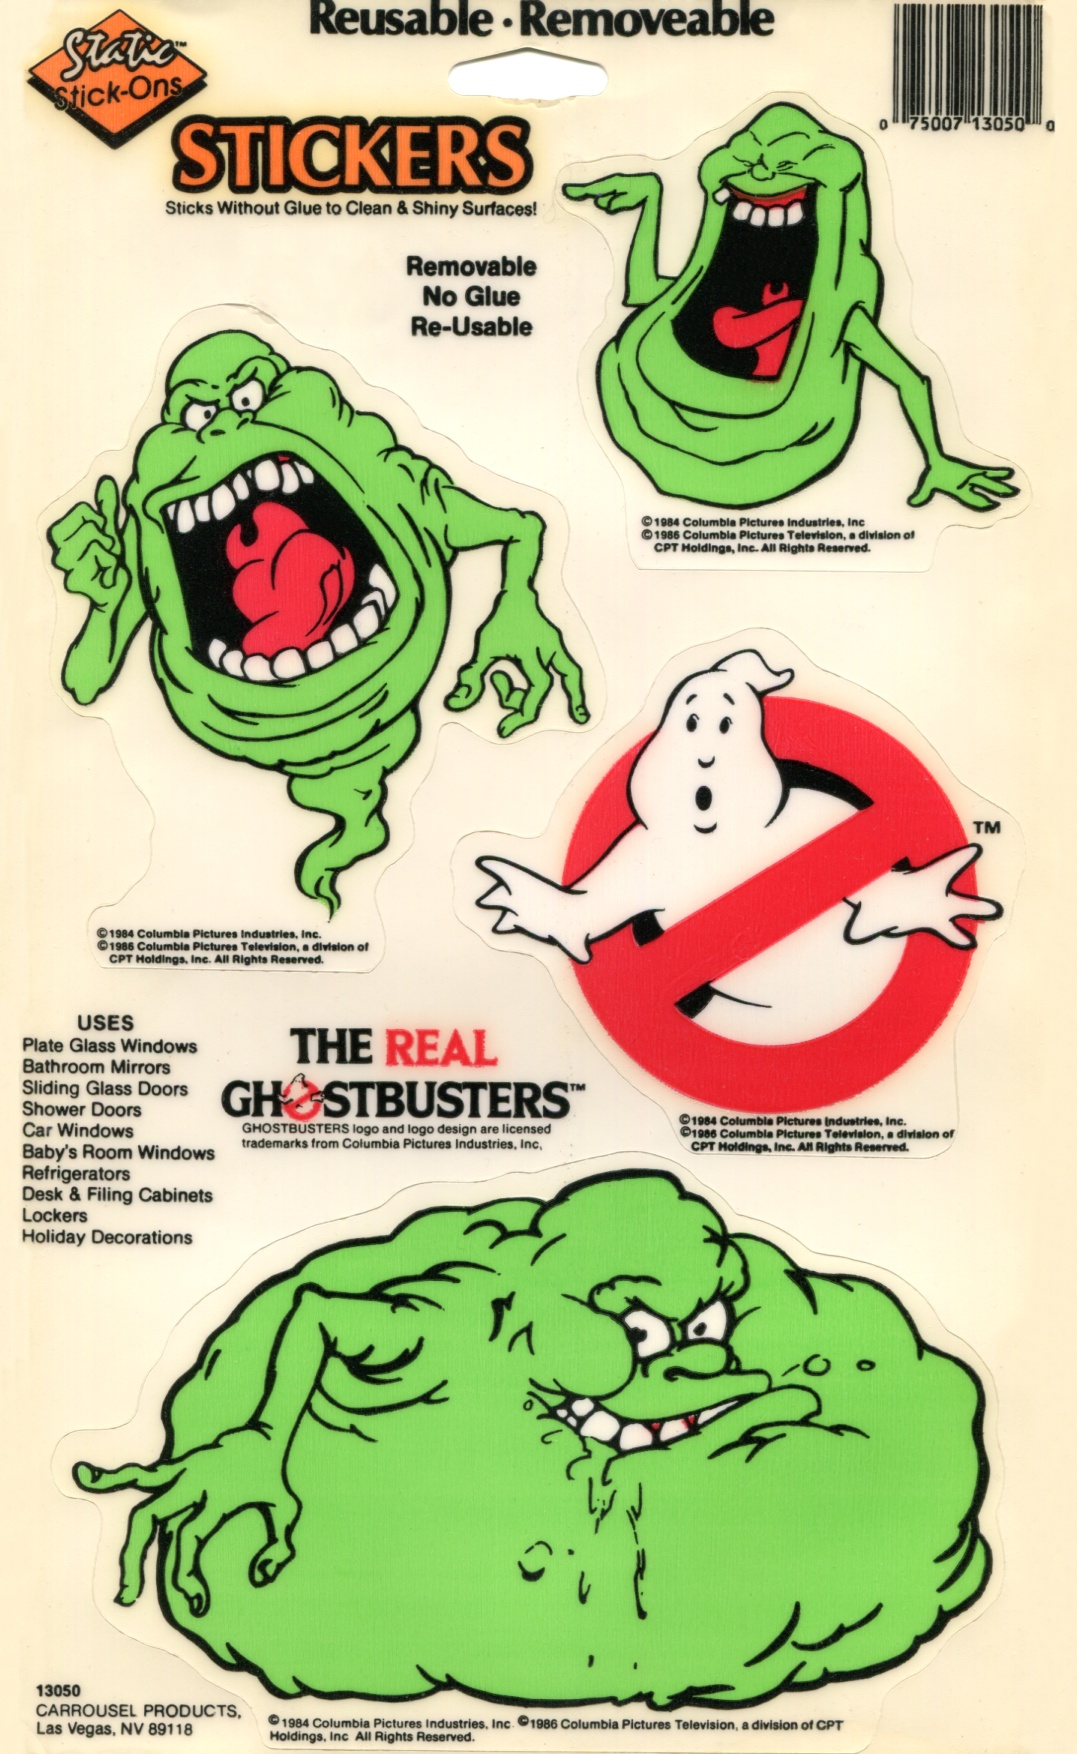 The Real Ghostbusters: Static Stick-Ons (By Dakin and Carrousel Products)